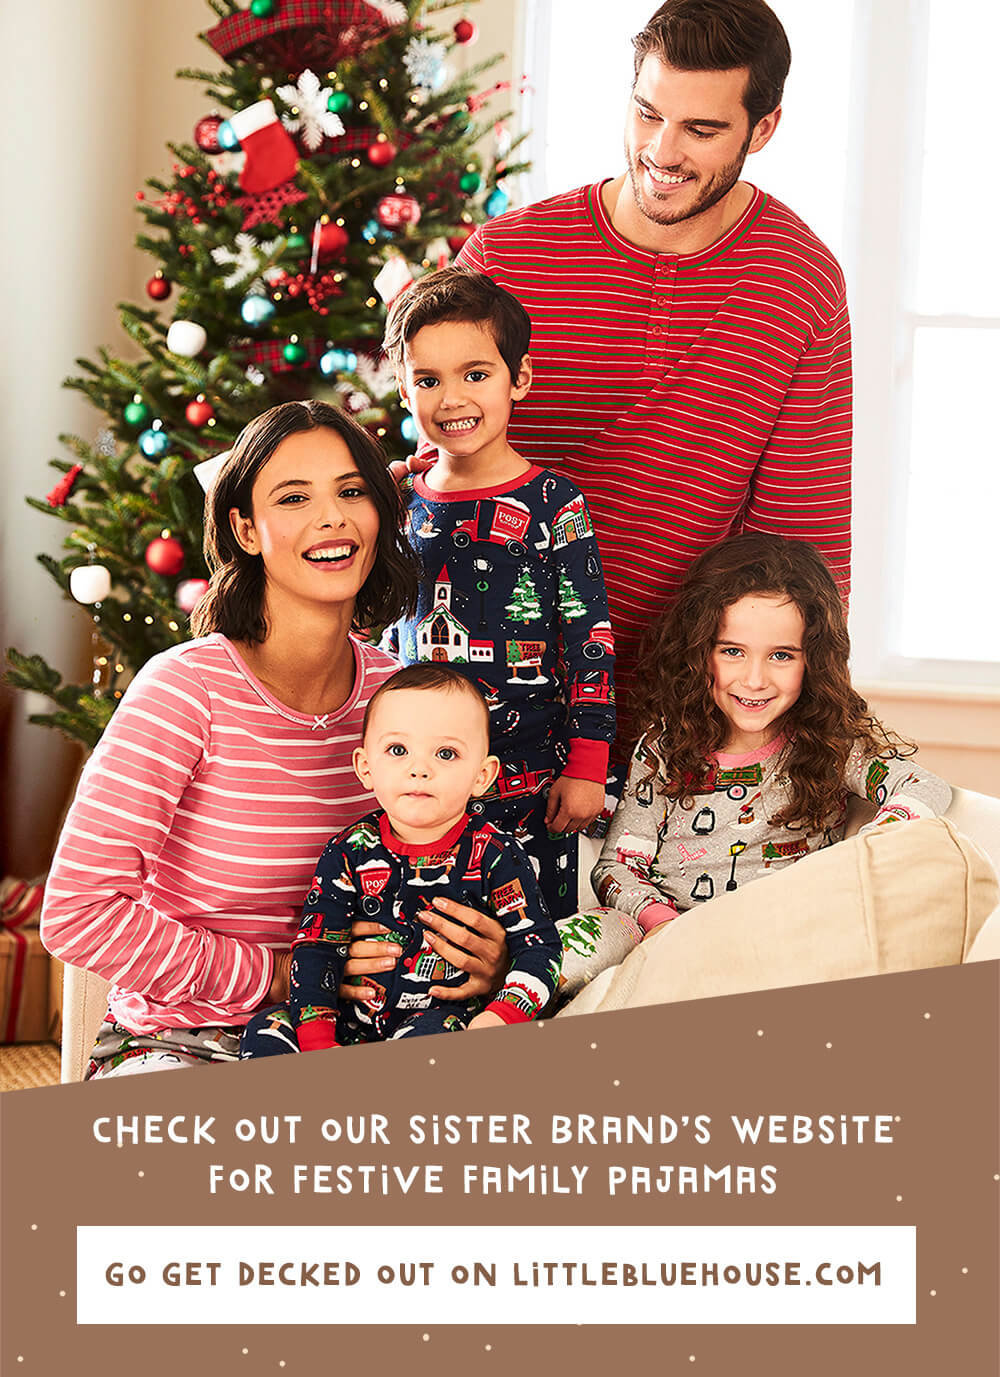 Shop pajamas at our sisiter site, littlebluehouse.com